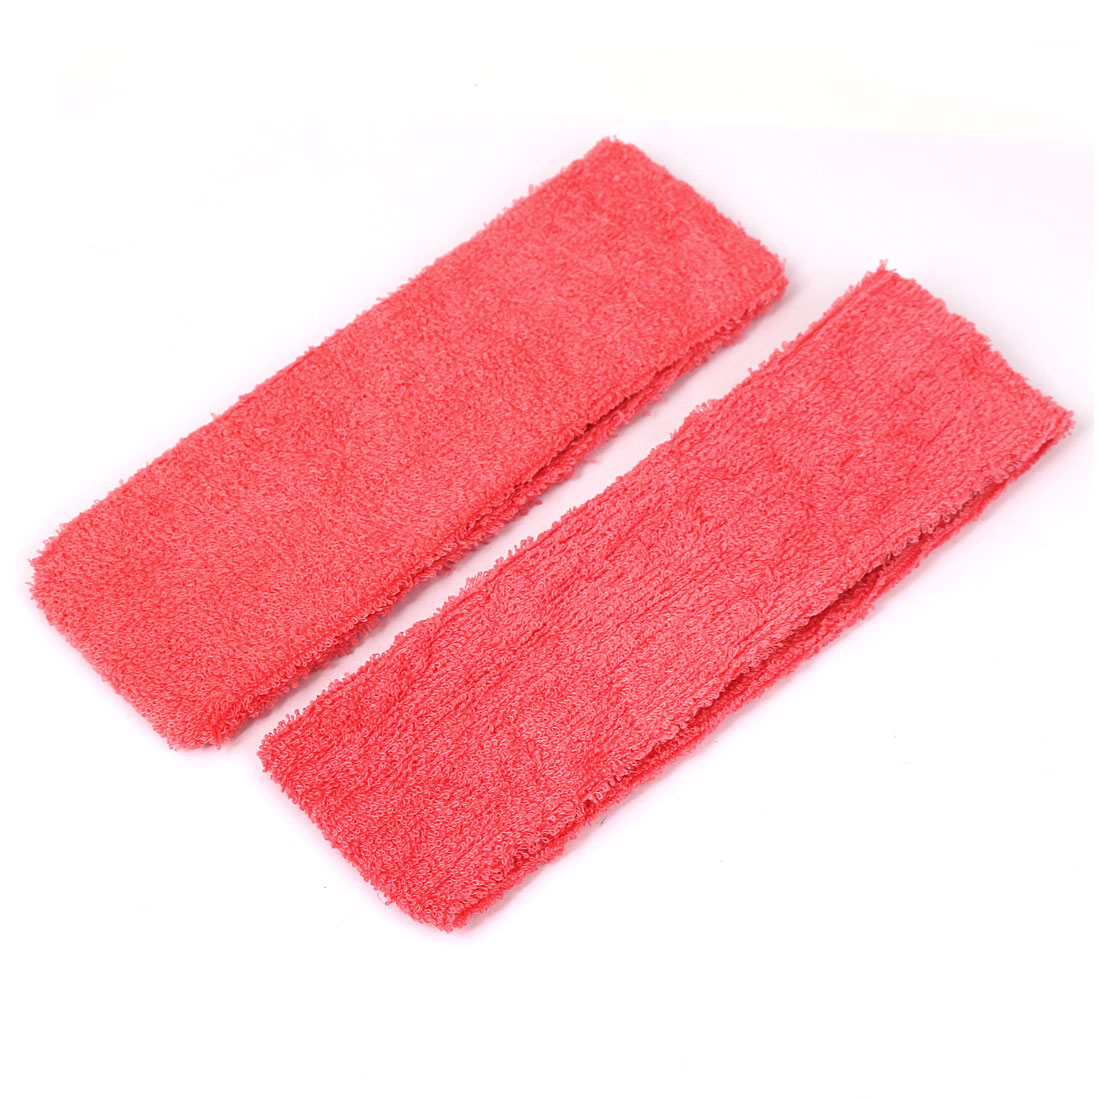 Unique BargainsCotton Stretchable Athletic Sports Makeup Shower Headband Red 2 Pcs